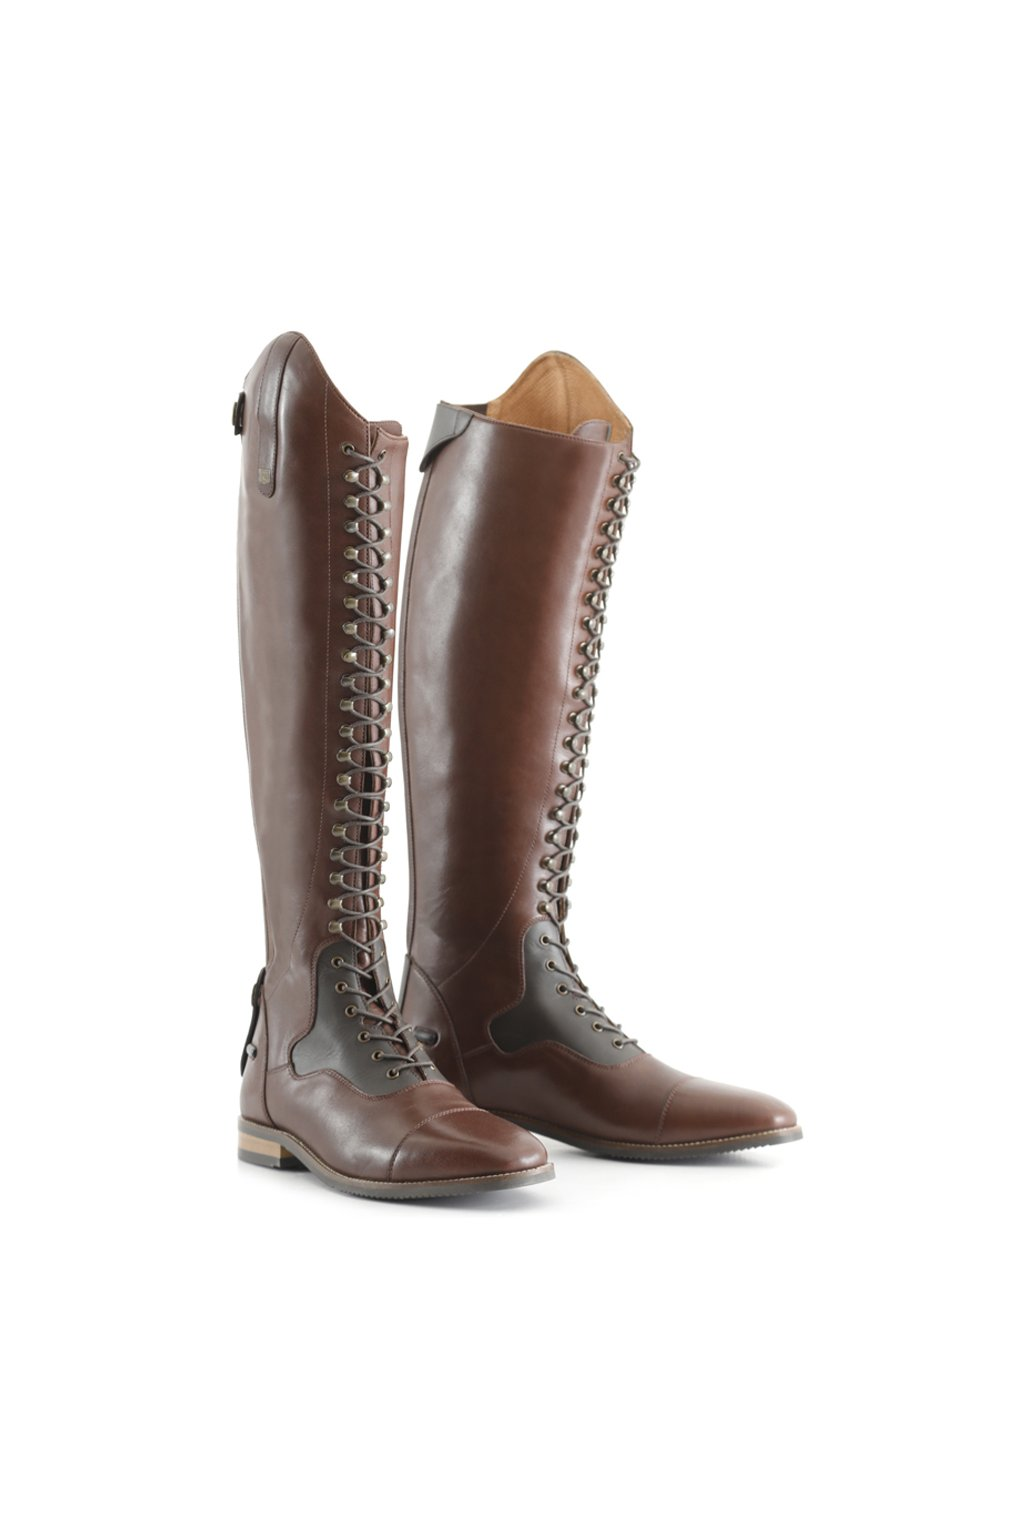 SS20 Maurizia Ladies Lace Front Long Leather Riding Boot Brown Main Image 72